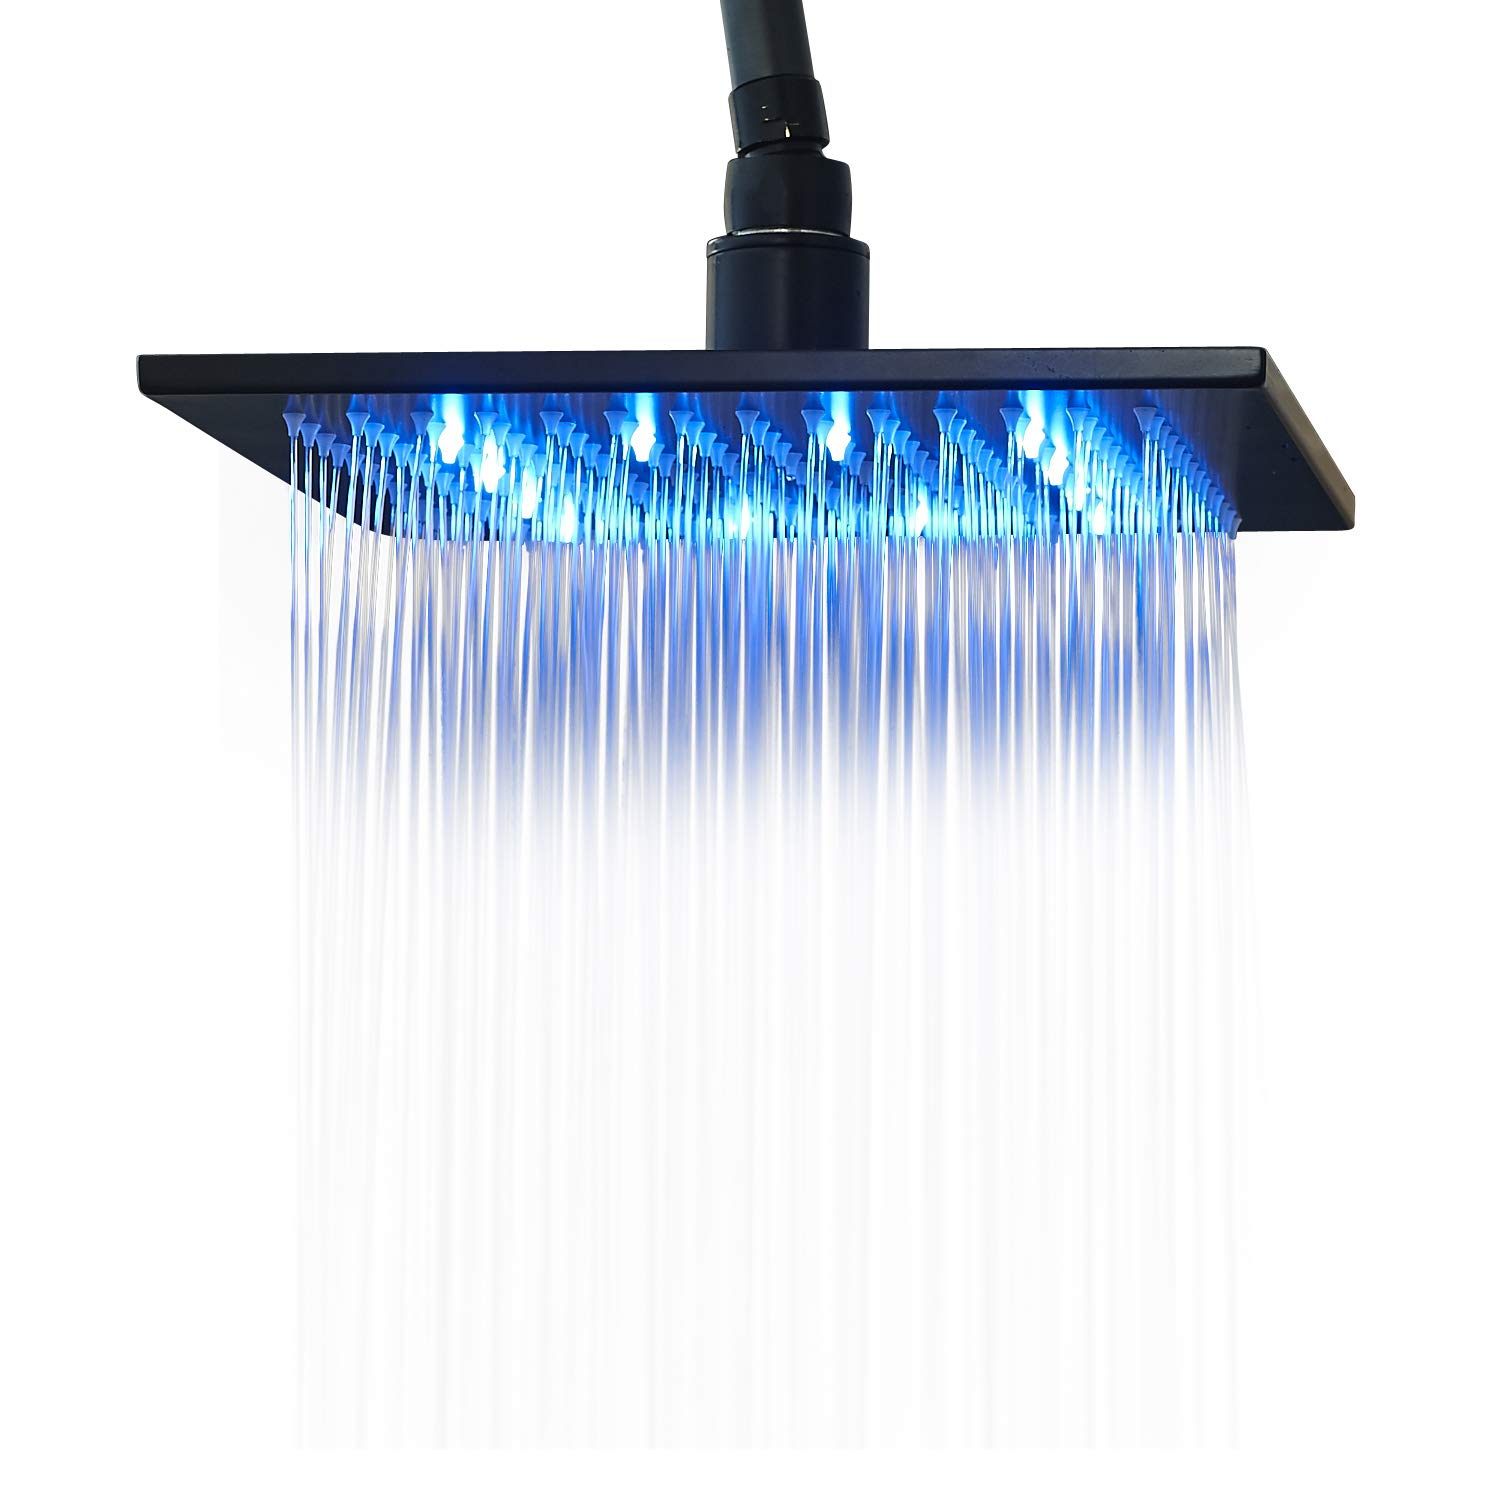 Rozin LED Light 10-inch Rainfall Shower Head Sqiare Overhead Spray Oil Rubbed Bronze by Rozin